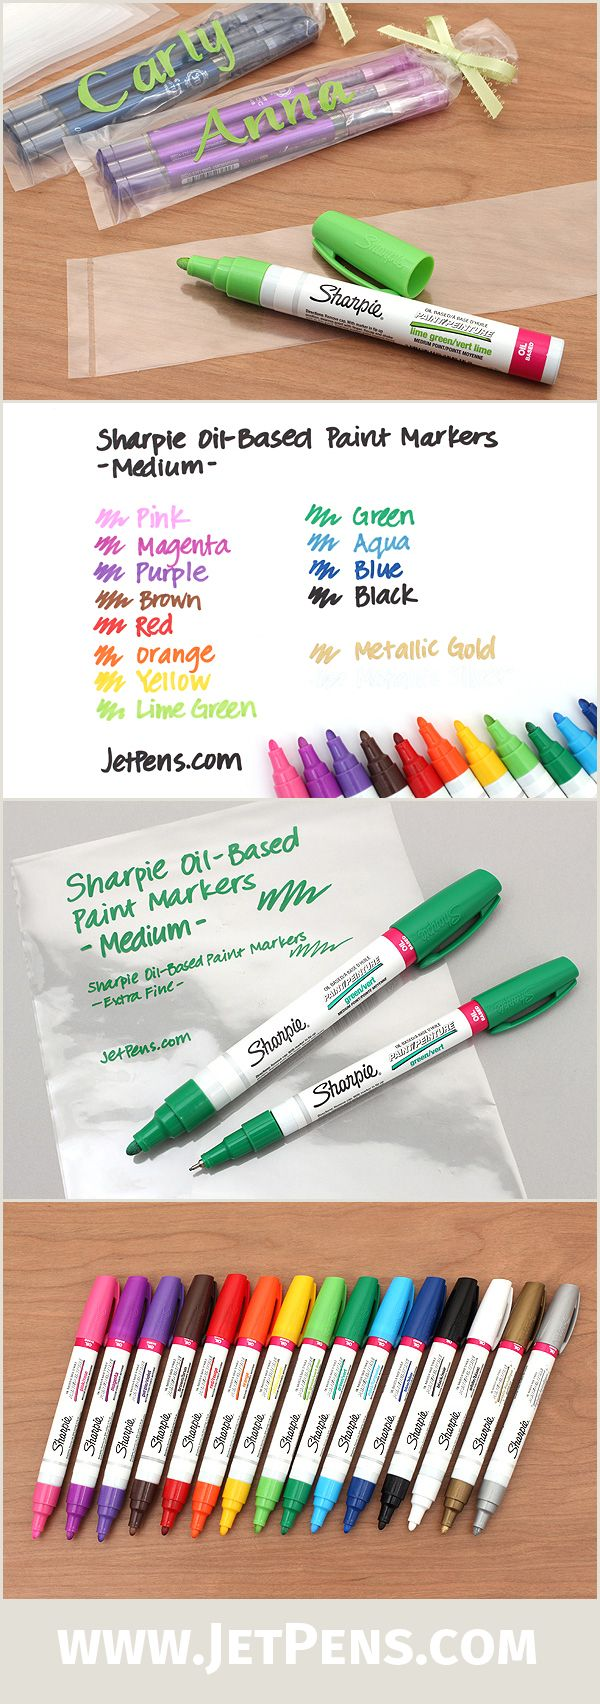 Paint pens for wood crafts - Great For Writing On Almost Any Nonporous Surface The Sharpie Oil Based Paint Markers